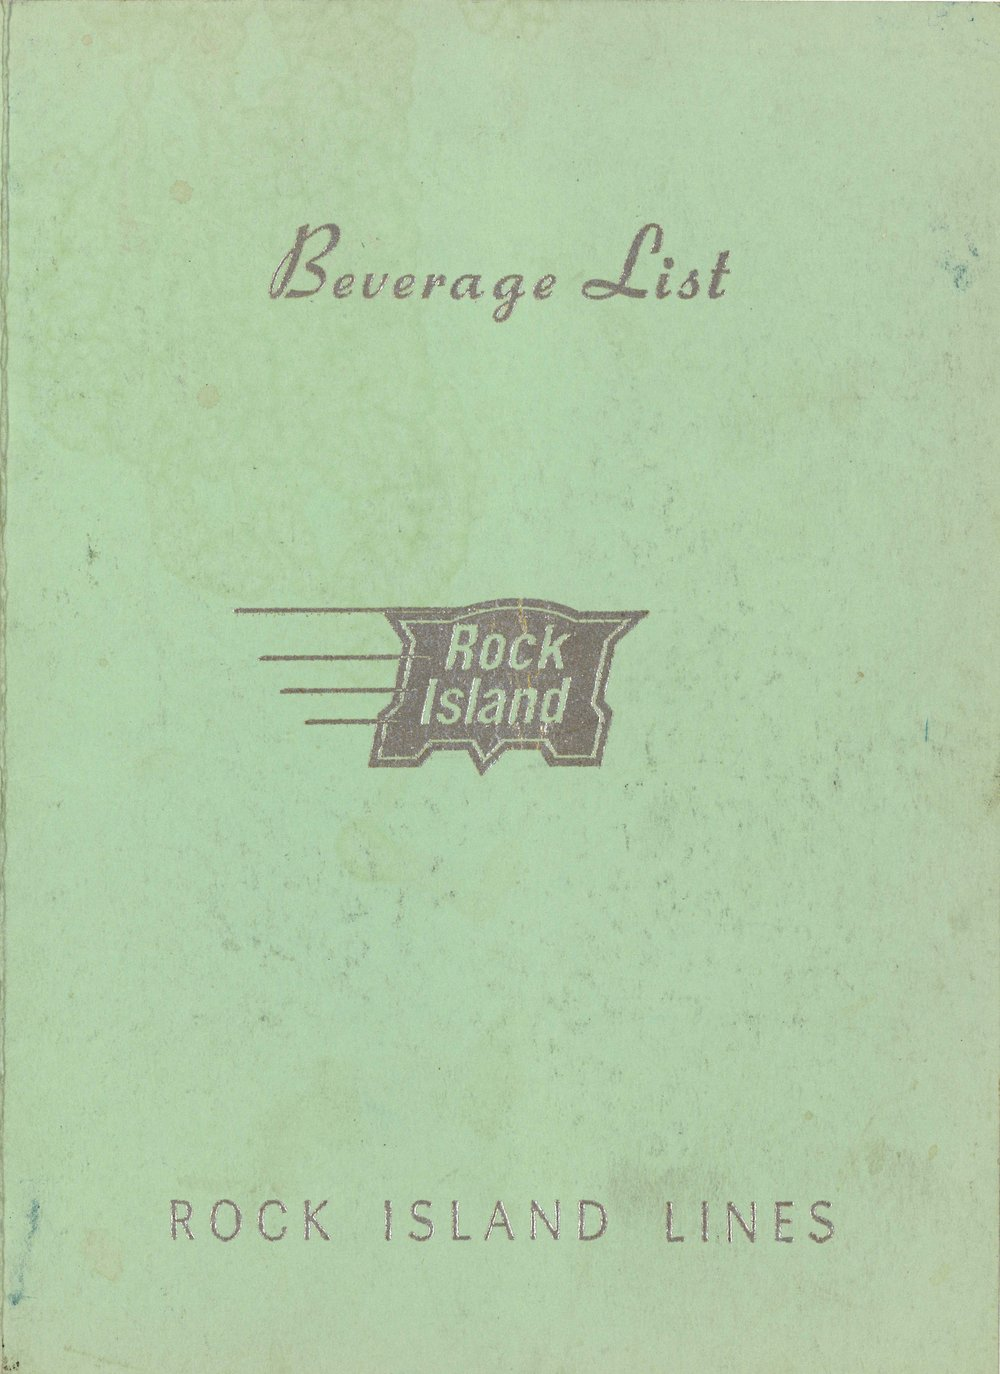 Rock Island Lines Beverage List_Sm1a.jpg